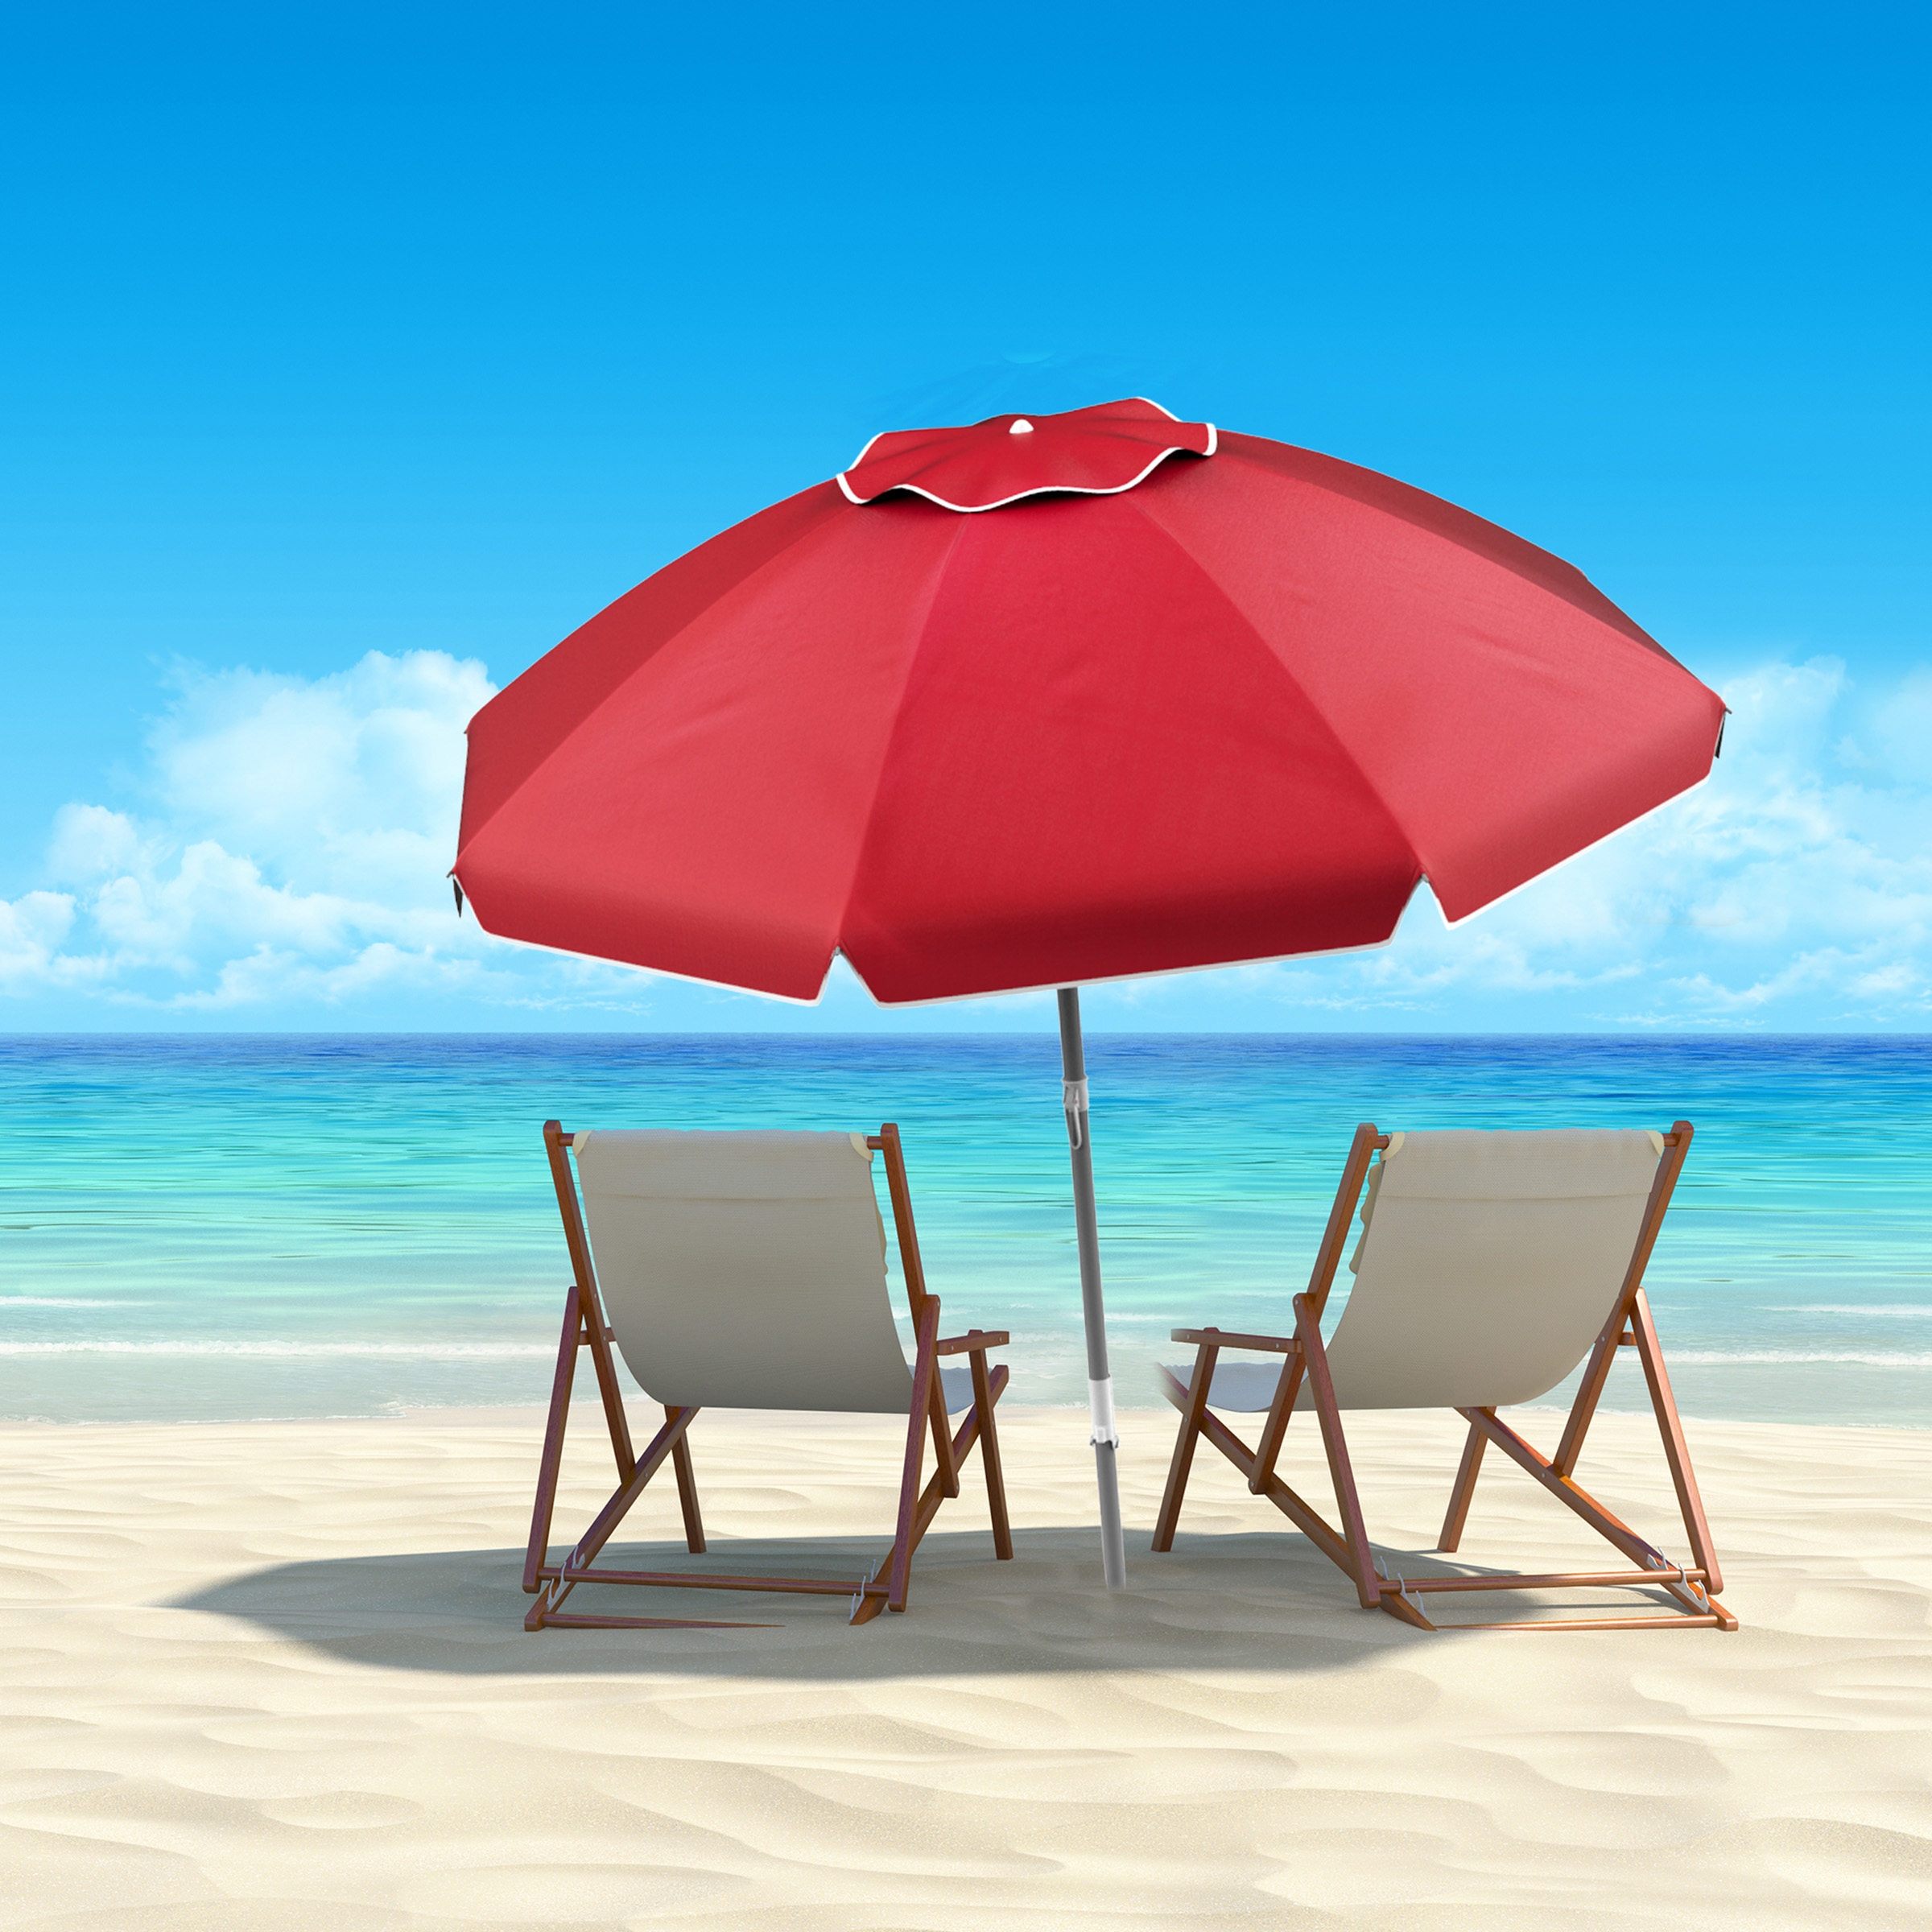 Leasure Fiberglass Portable Beach Umbrellas Throughout Most Up To Date Beach Umbrella With 360 Degree Tilt Portable Outdoor Sun Shade Canopy With Uv Protection, Sand Anchor, Carrying Casepure Garden (7 Ft, Blue) (Gallery 2 of 20)